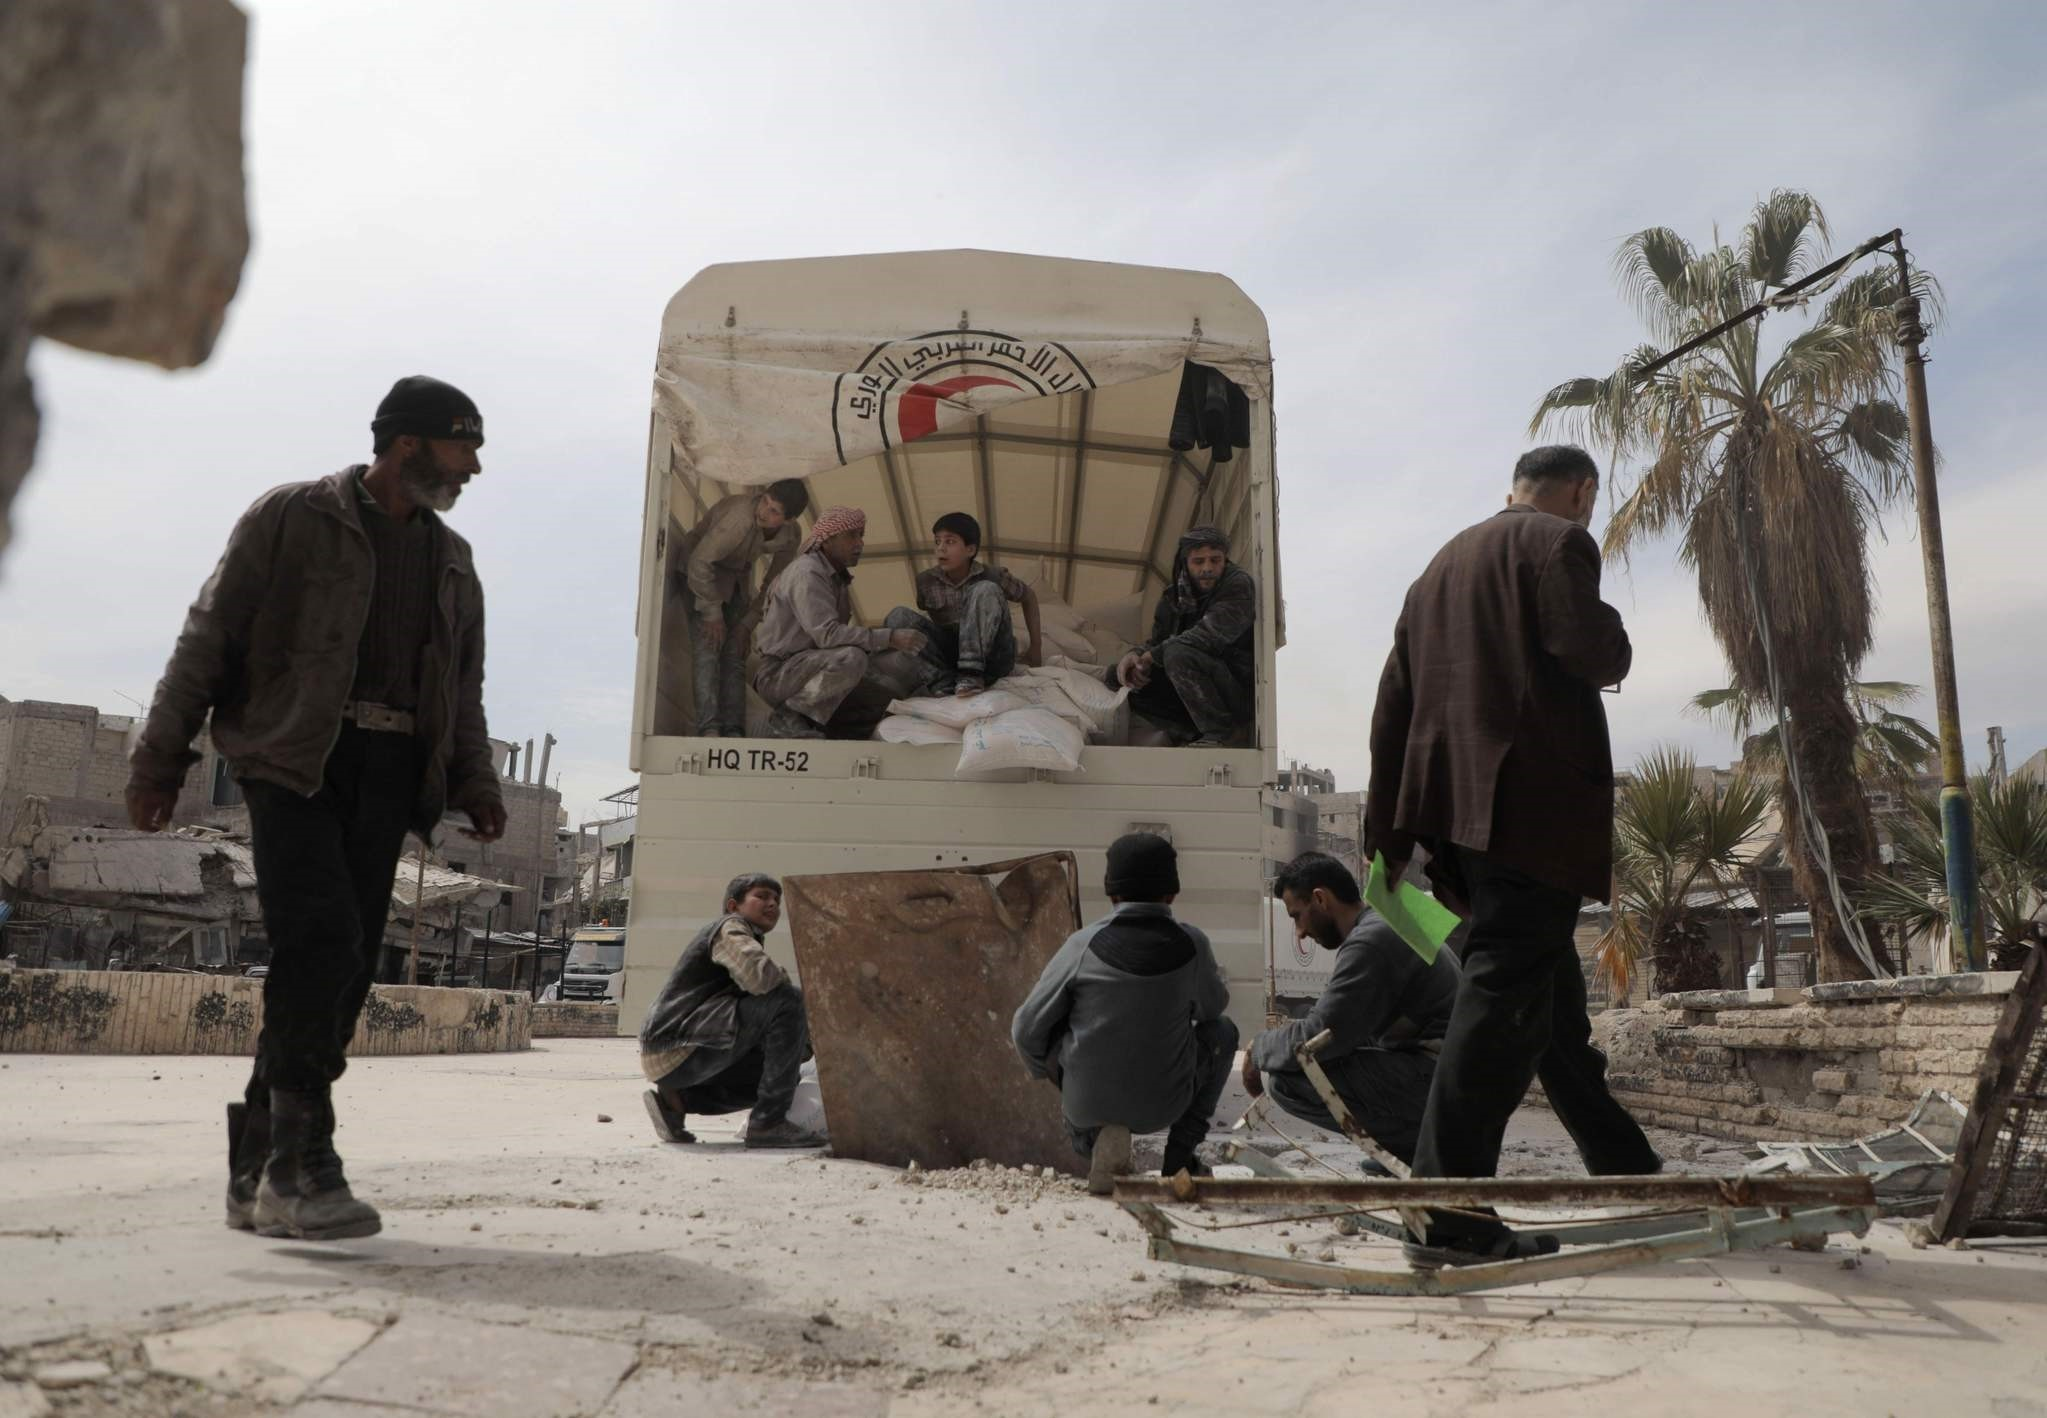 Syrians offload sacks of flour into an underground storage space after a humanitarian convoy carrying food aid arrived in the opposition-held town of Douma, in Eastern Ghouta. (AFP Photo)